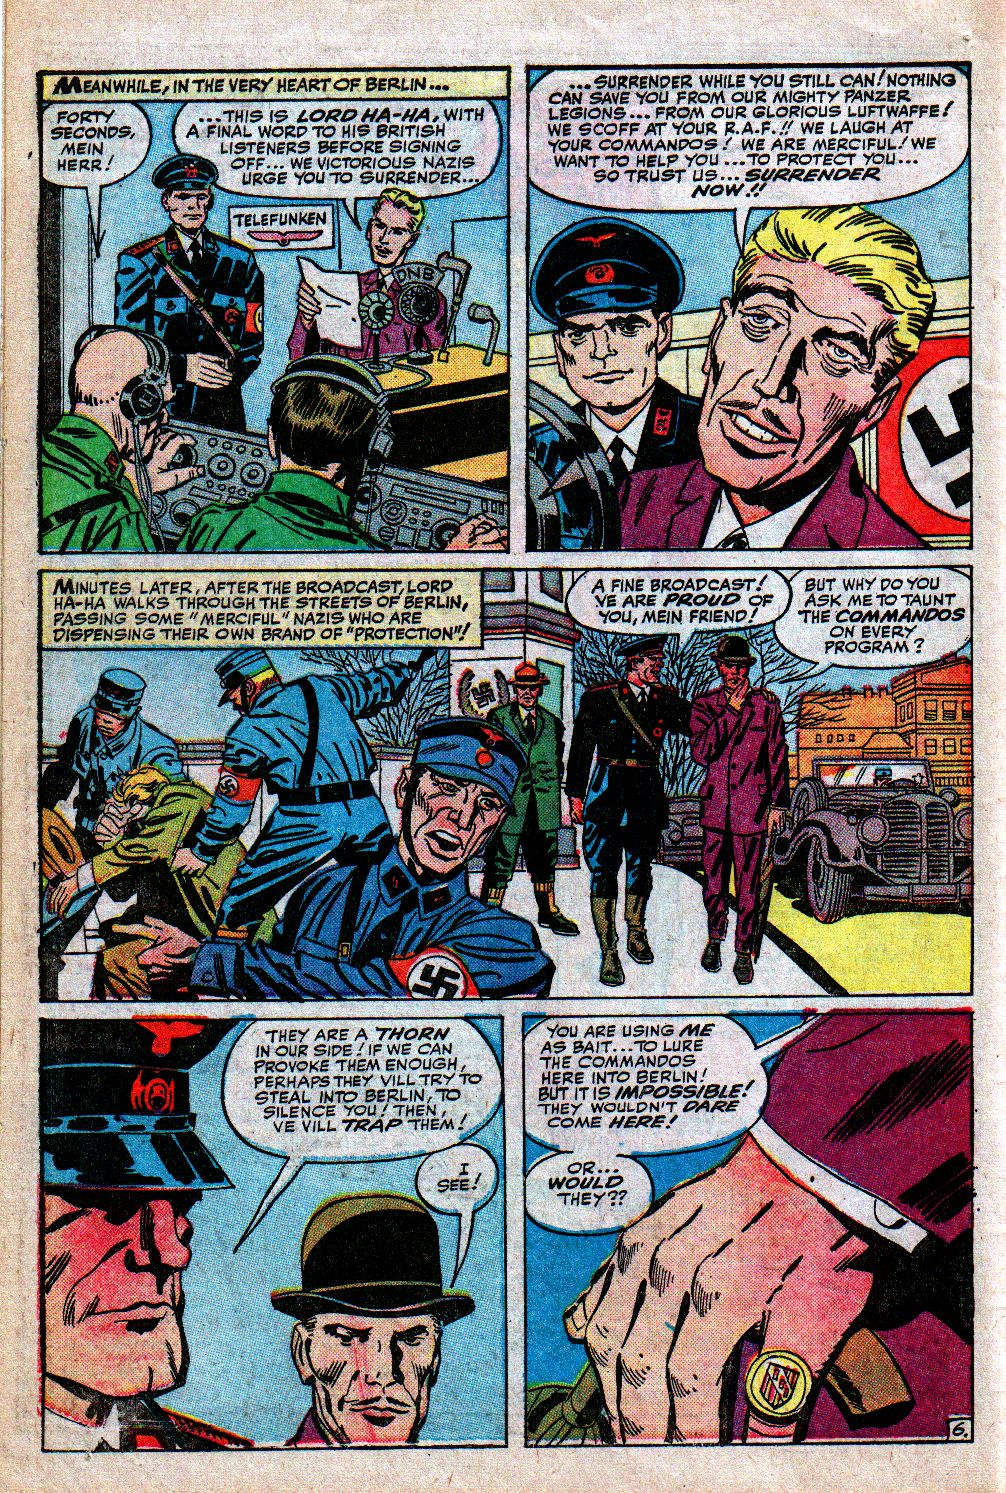 Read online Sgt. Fury comic -  Issue #4 - 10